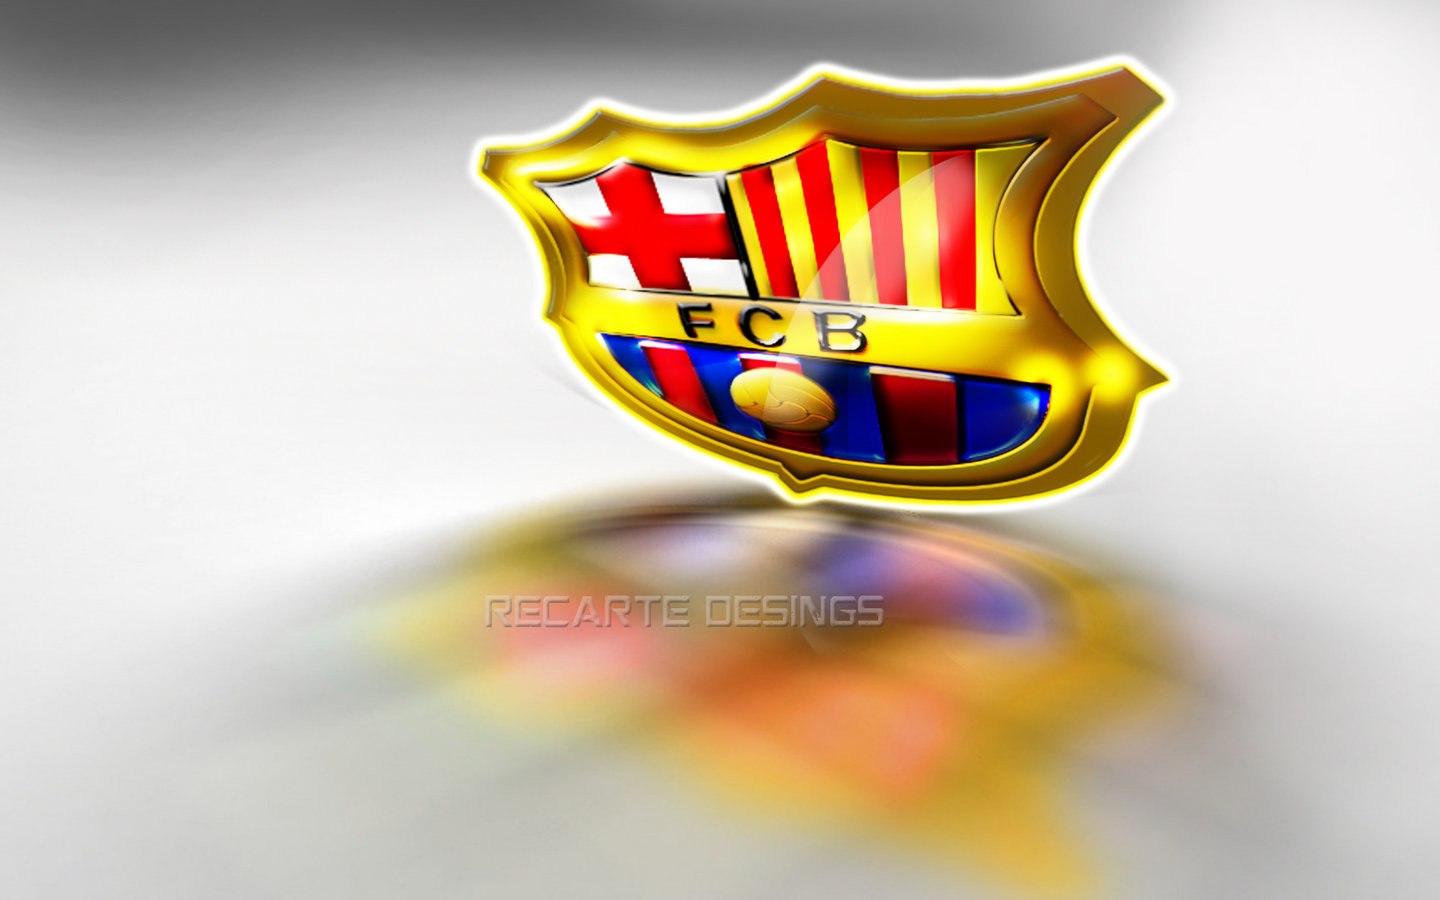 wallpapers hd for mac: Barcelona Football Club Logo ...